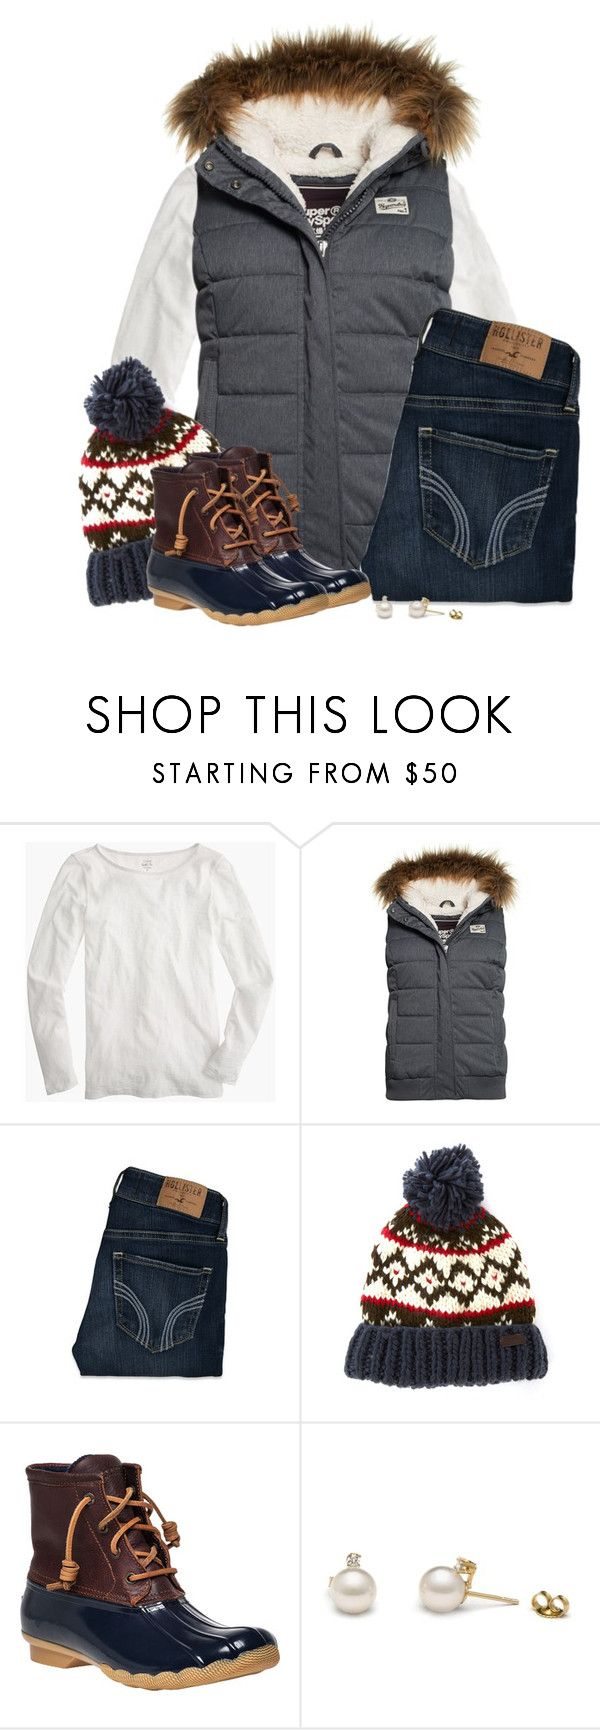 """Fur hooded vest, Nordic beanie & duck boots"" by steffiestaffie ❤ liked on Polyvore featuring J.Crew, Superdry, Hollister Co., Barbour and Sperry Top-Sider"